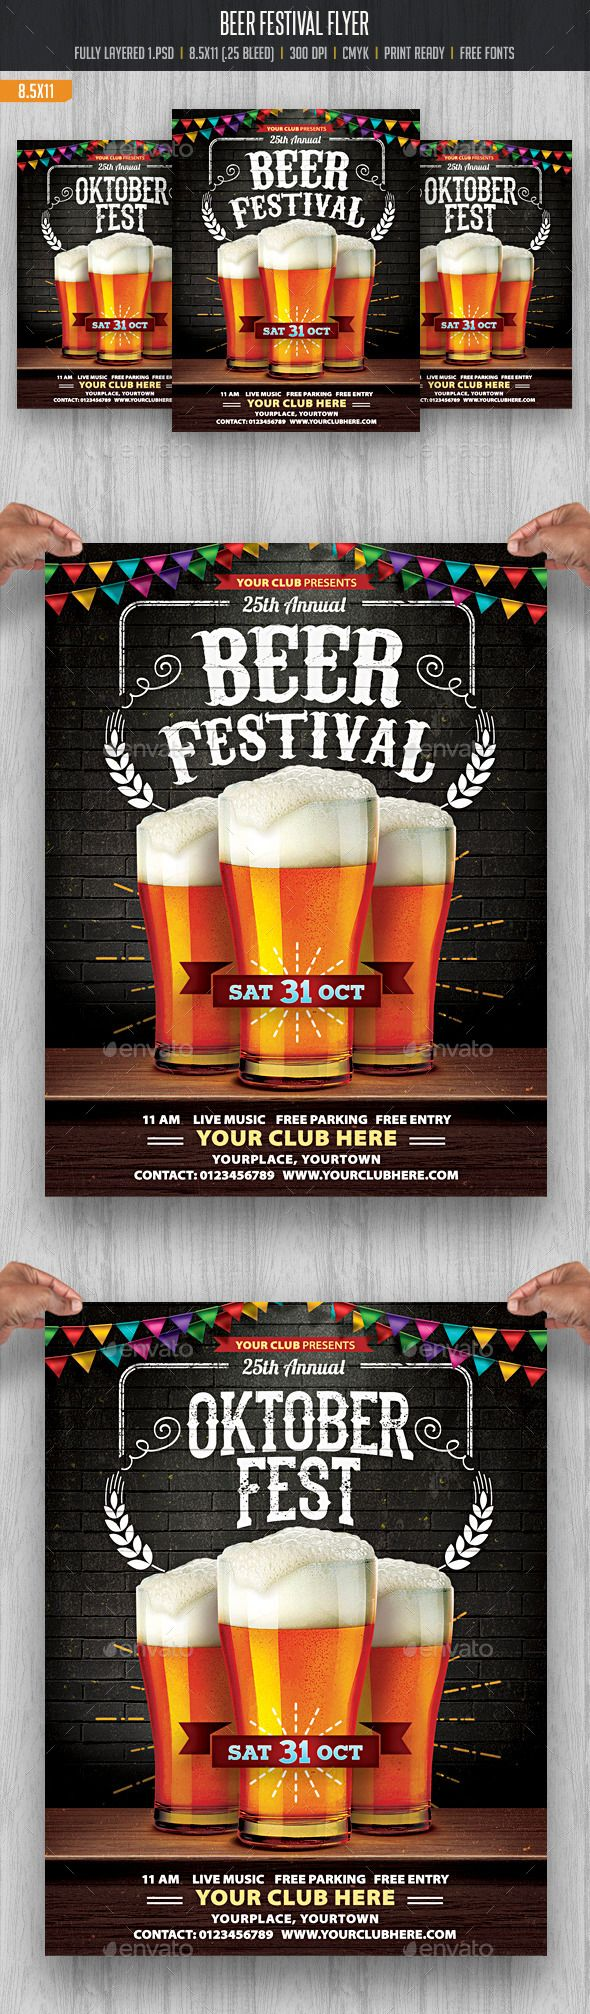 Beer Festival Flyer Template #design Download: http://graphicriver.net/item/beer-festival/12683108?ref=ksioks